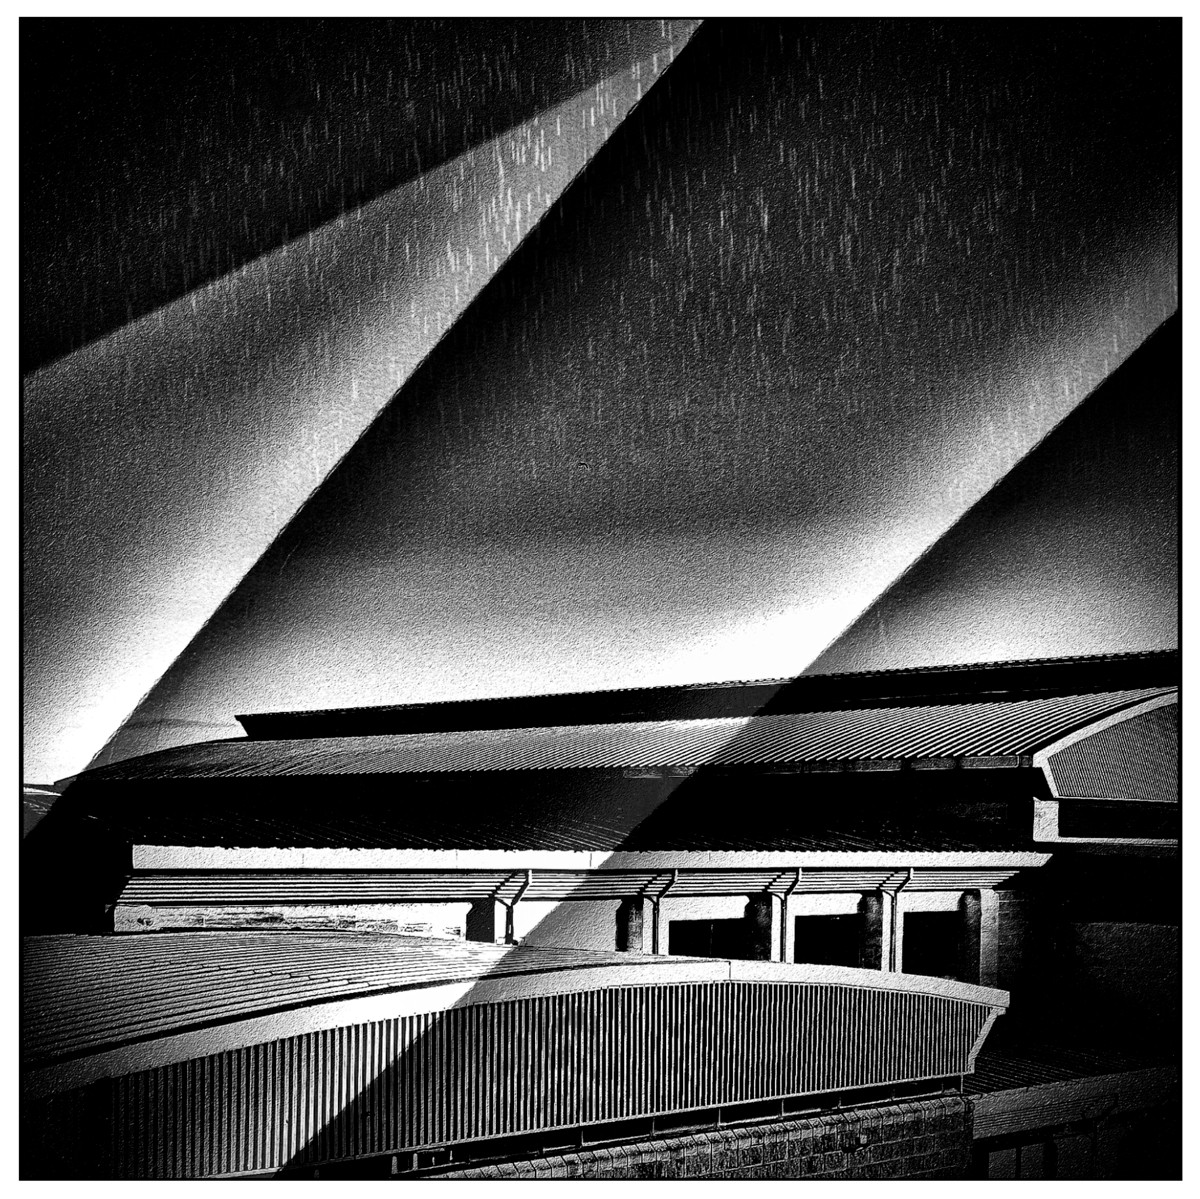 MONO - A Roof At Your Leisure by Grahame Morrison (13 marks)